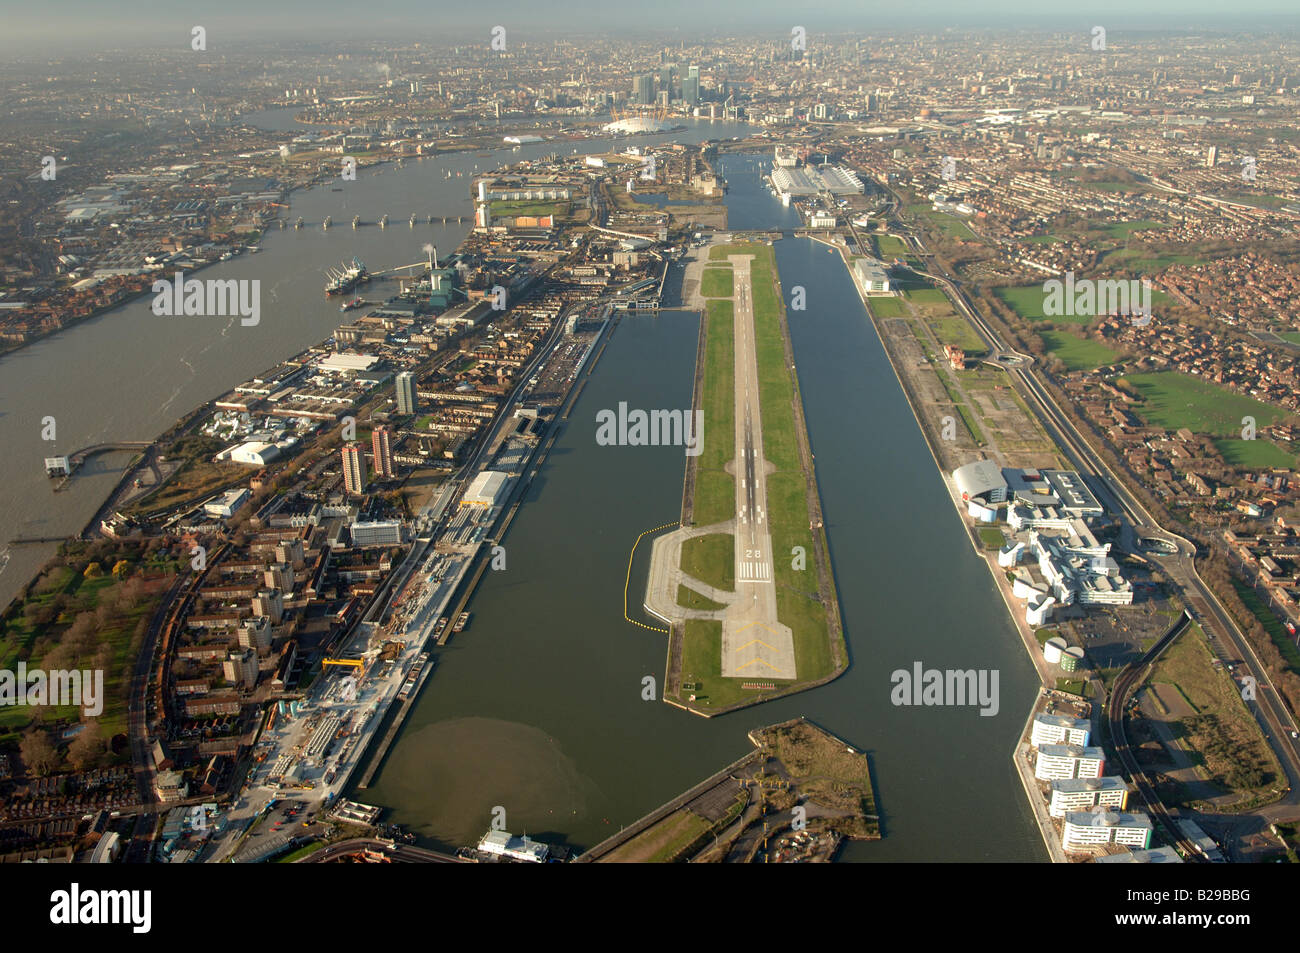 London City Airport Date 12 03 2008 Ref ZB648 111149 0044 COMPULSORY CREDIT World Pictures Photoshot - Stock Image